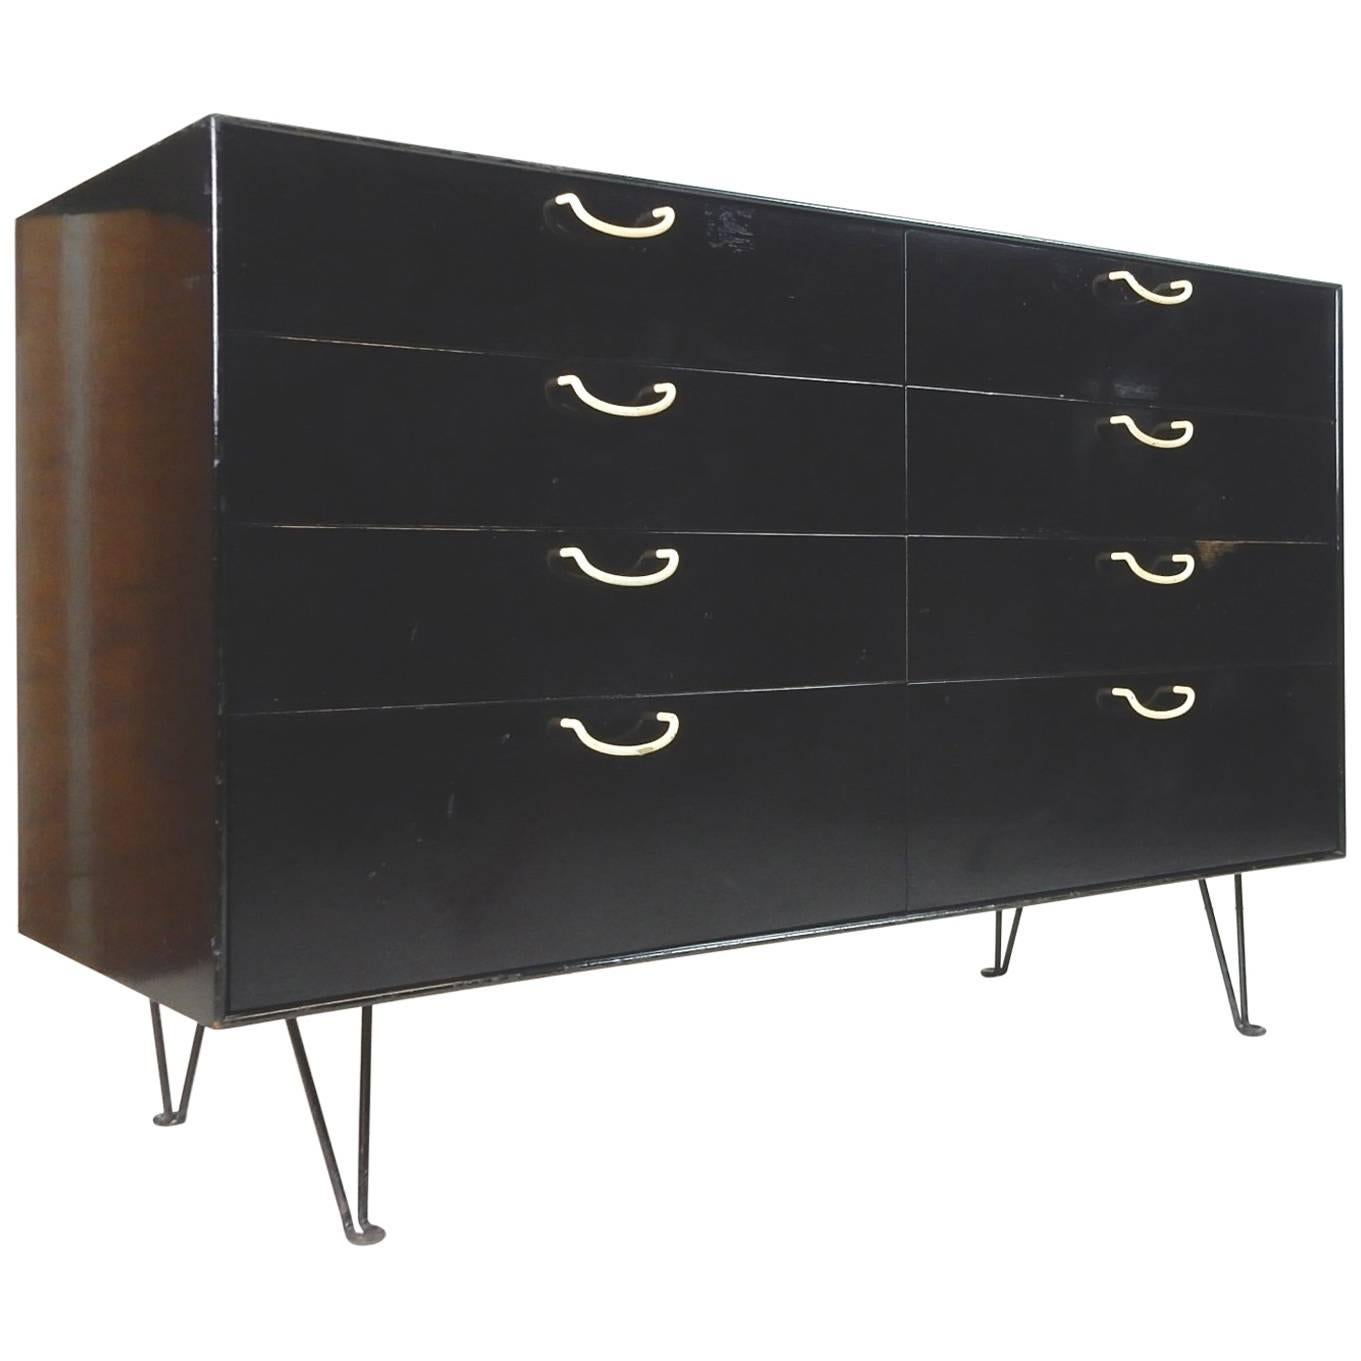 Attirant George Nelson For Herman Miller Ebonized Thin Edge Eight Drawer Cabinet For  Sale